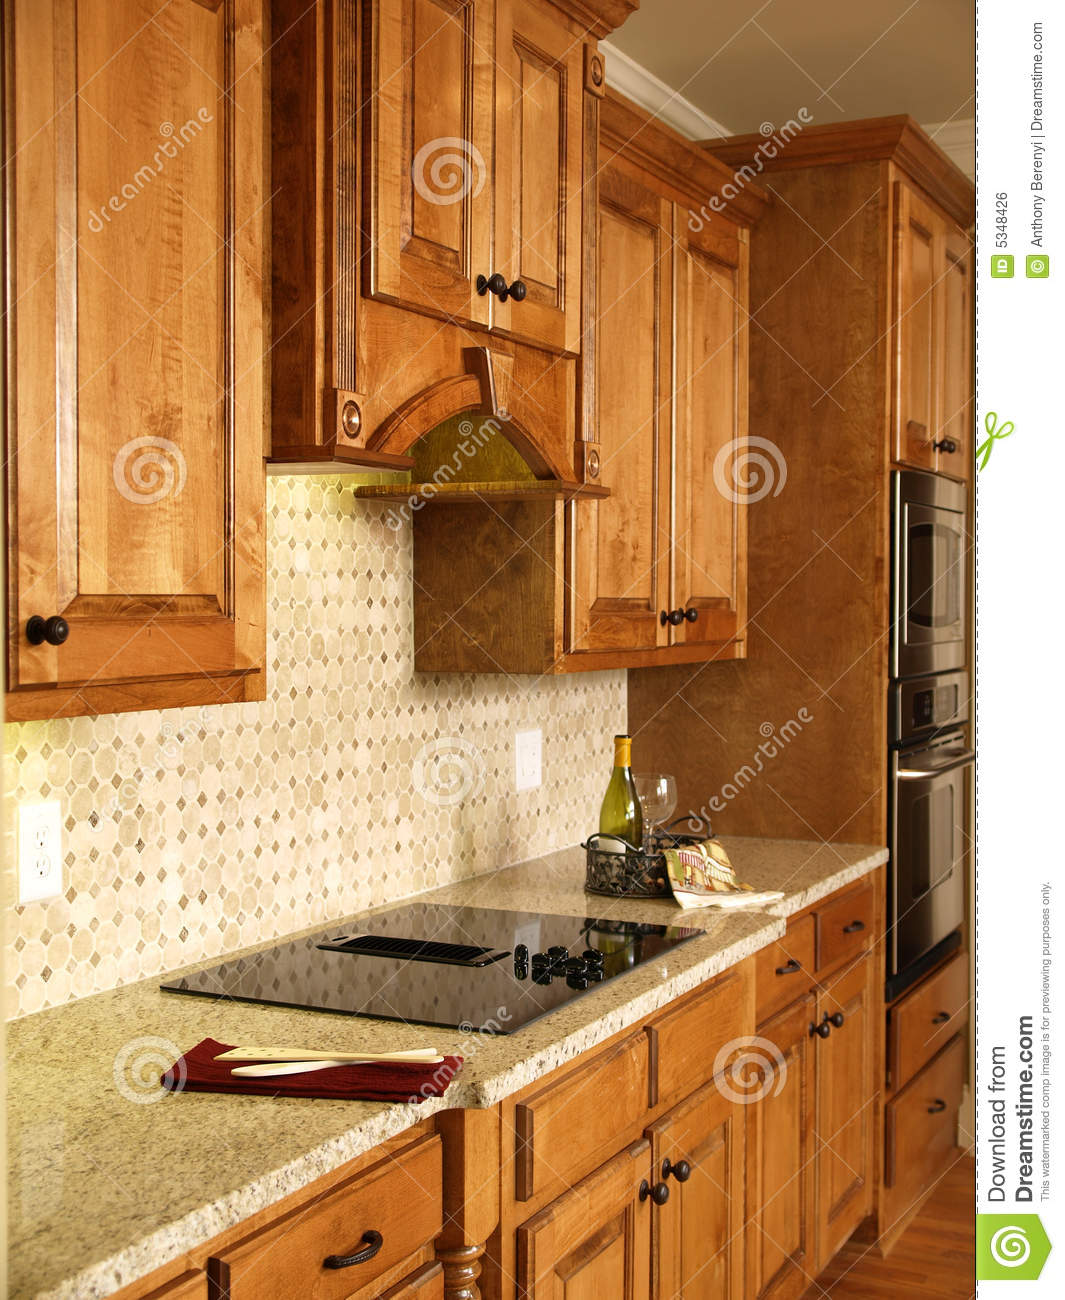 Luxury Model Home Honey Kitchen Cabinets Royalty Free